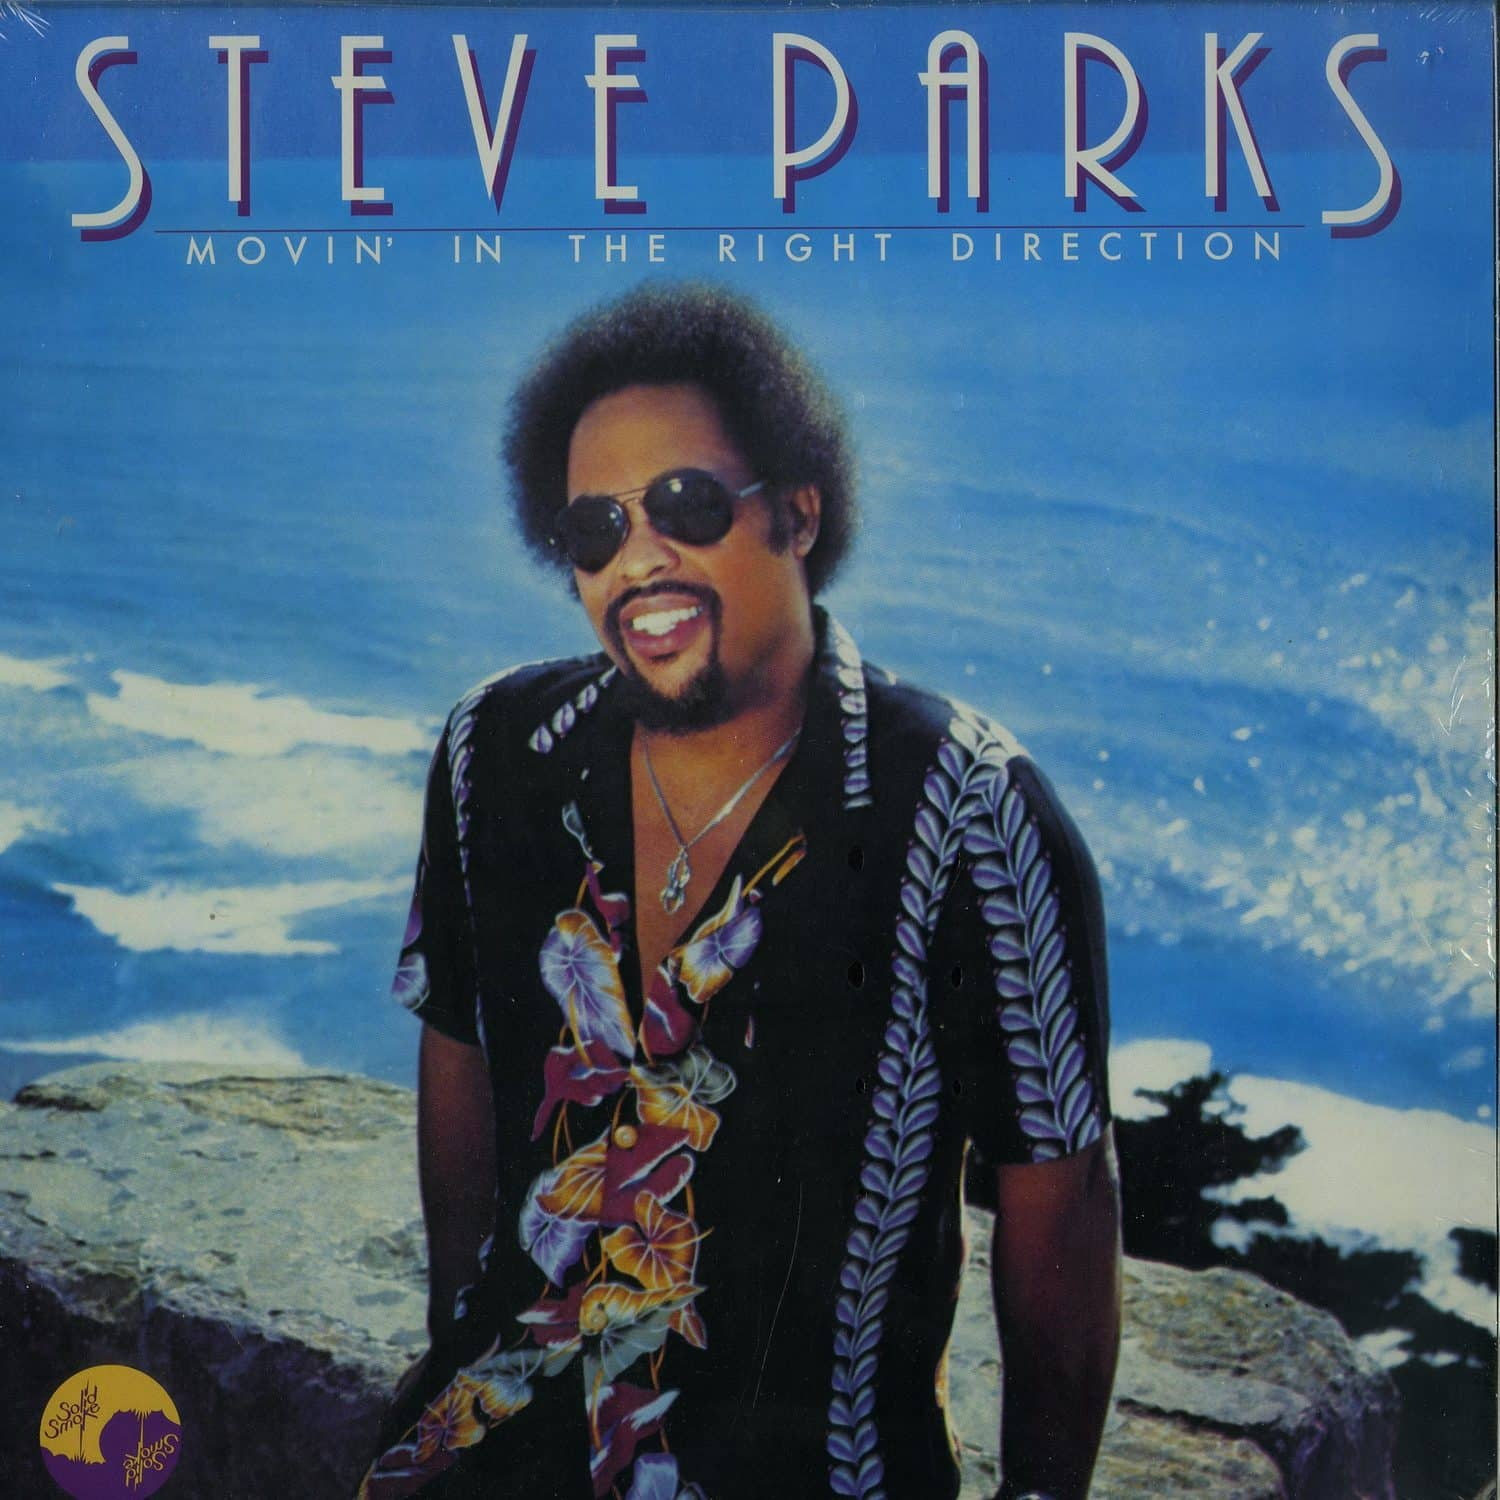 Steve Parks - MOVIN IN THE RIGHT DIRECTION